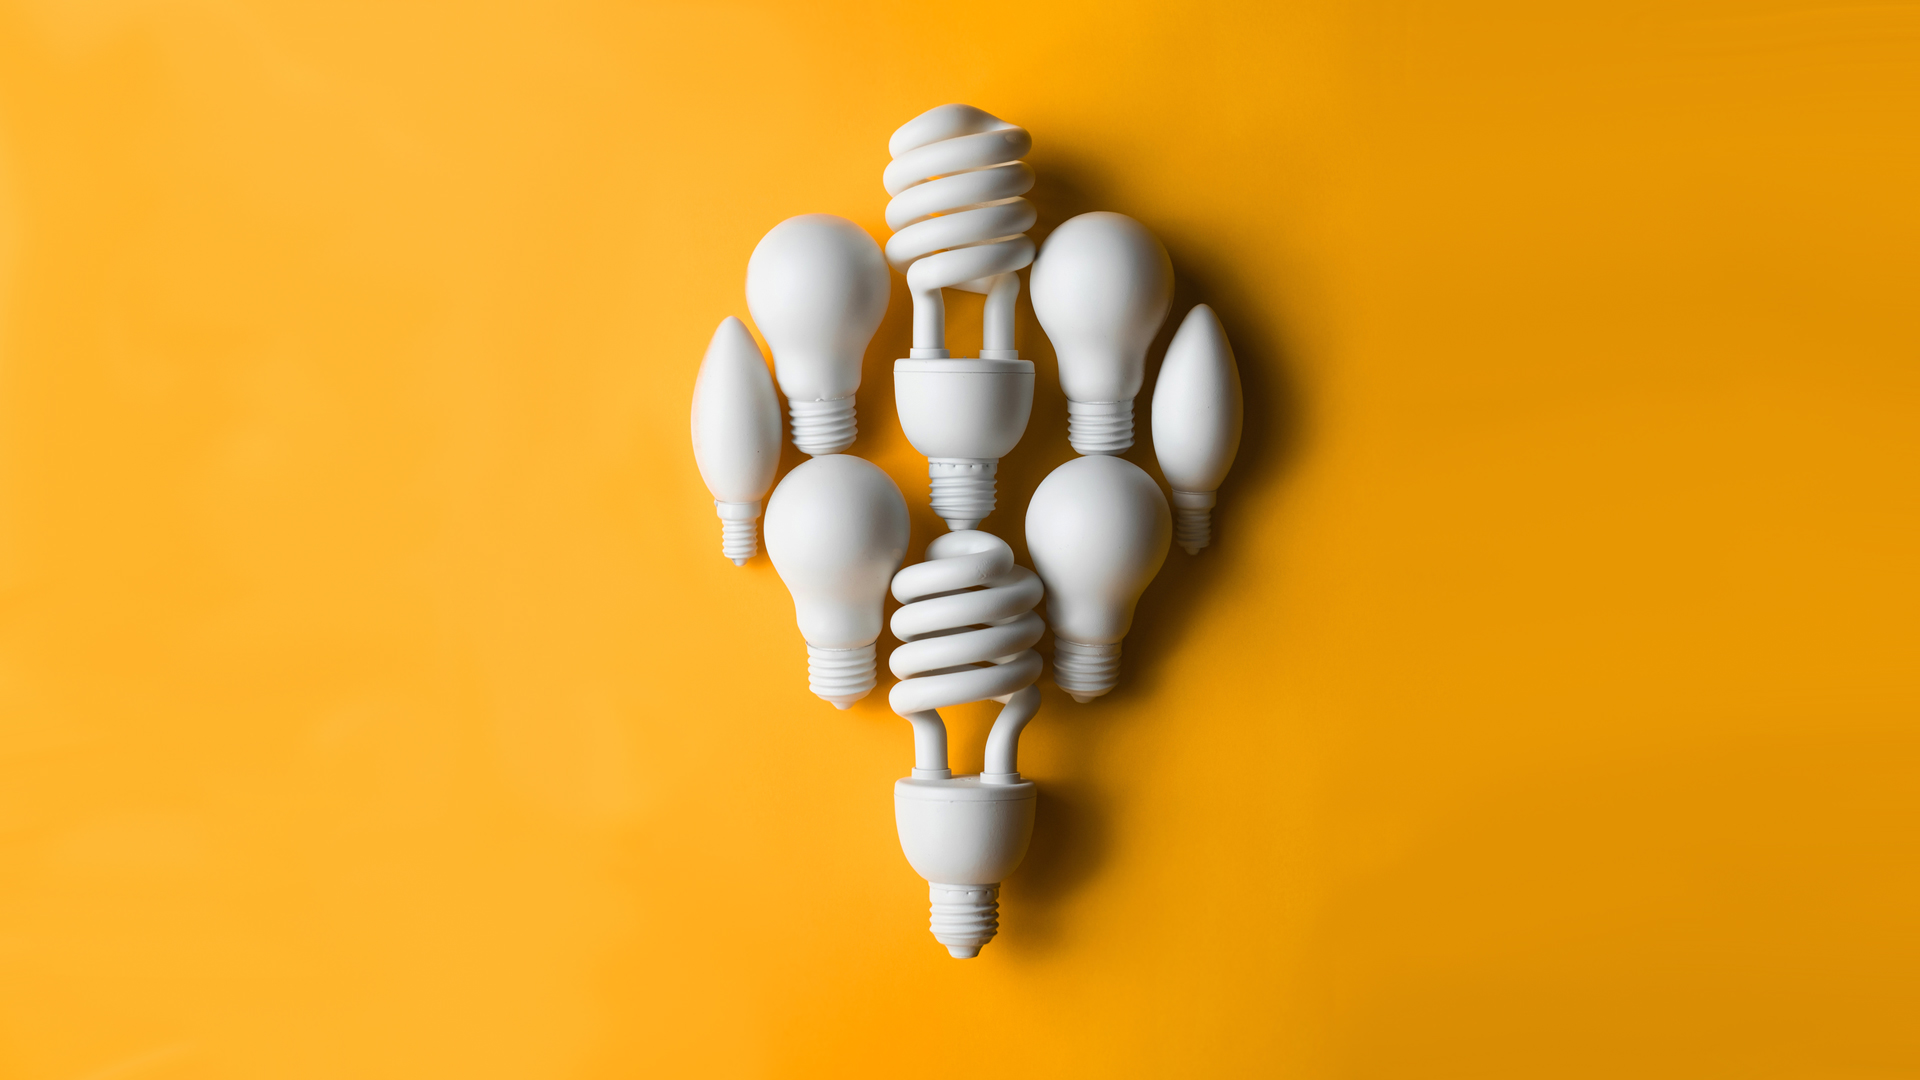 intro-lightbulbs.jpg